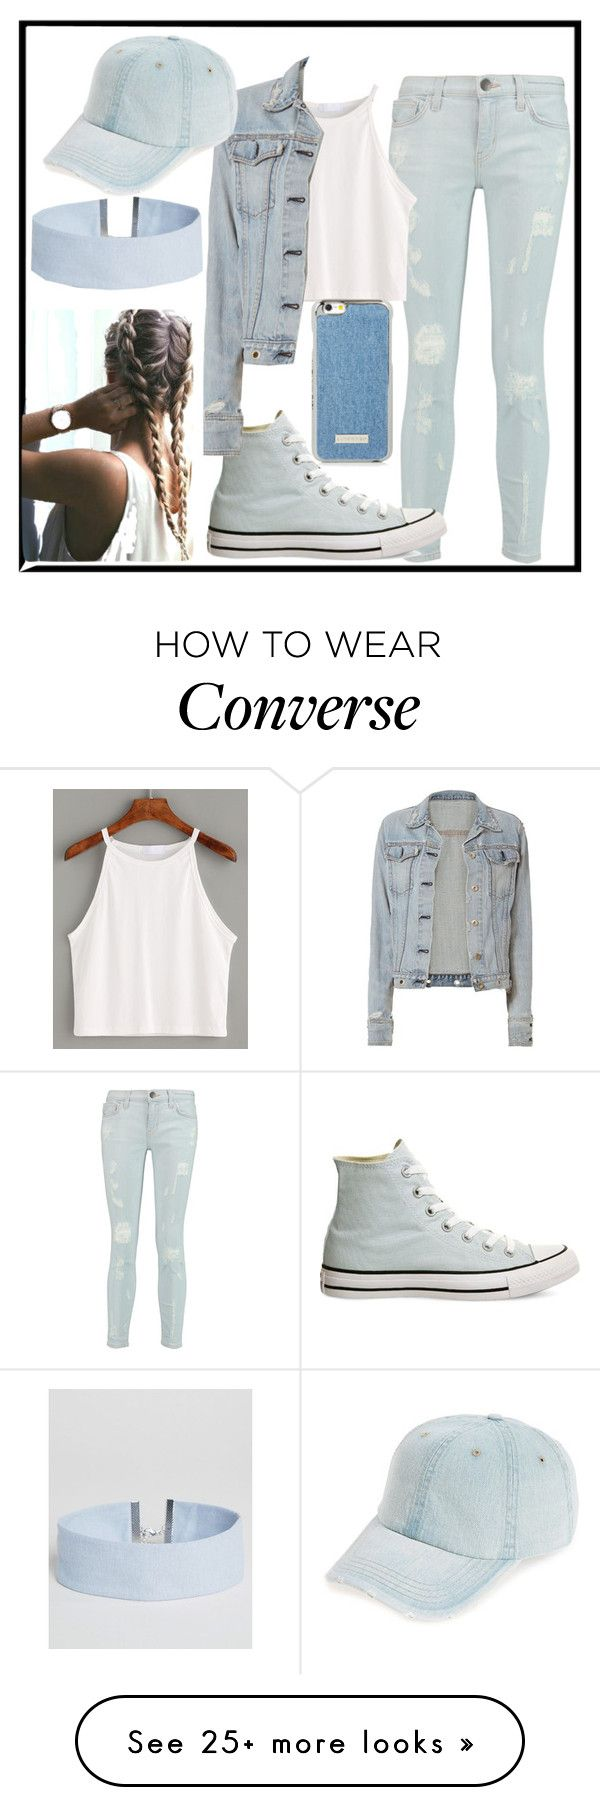 """""""Denim Everything"""" by mikahbae on Polyvore featuring Current/Elliott, Converse, rag & bone, Fantasia and ASOS"""